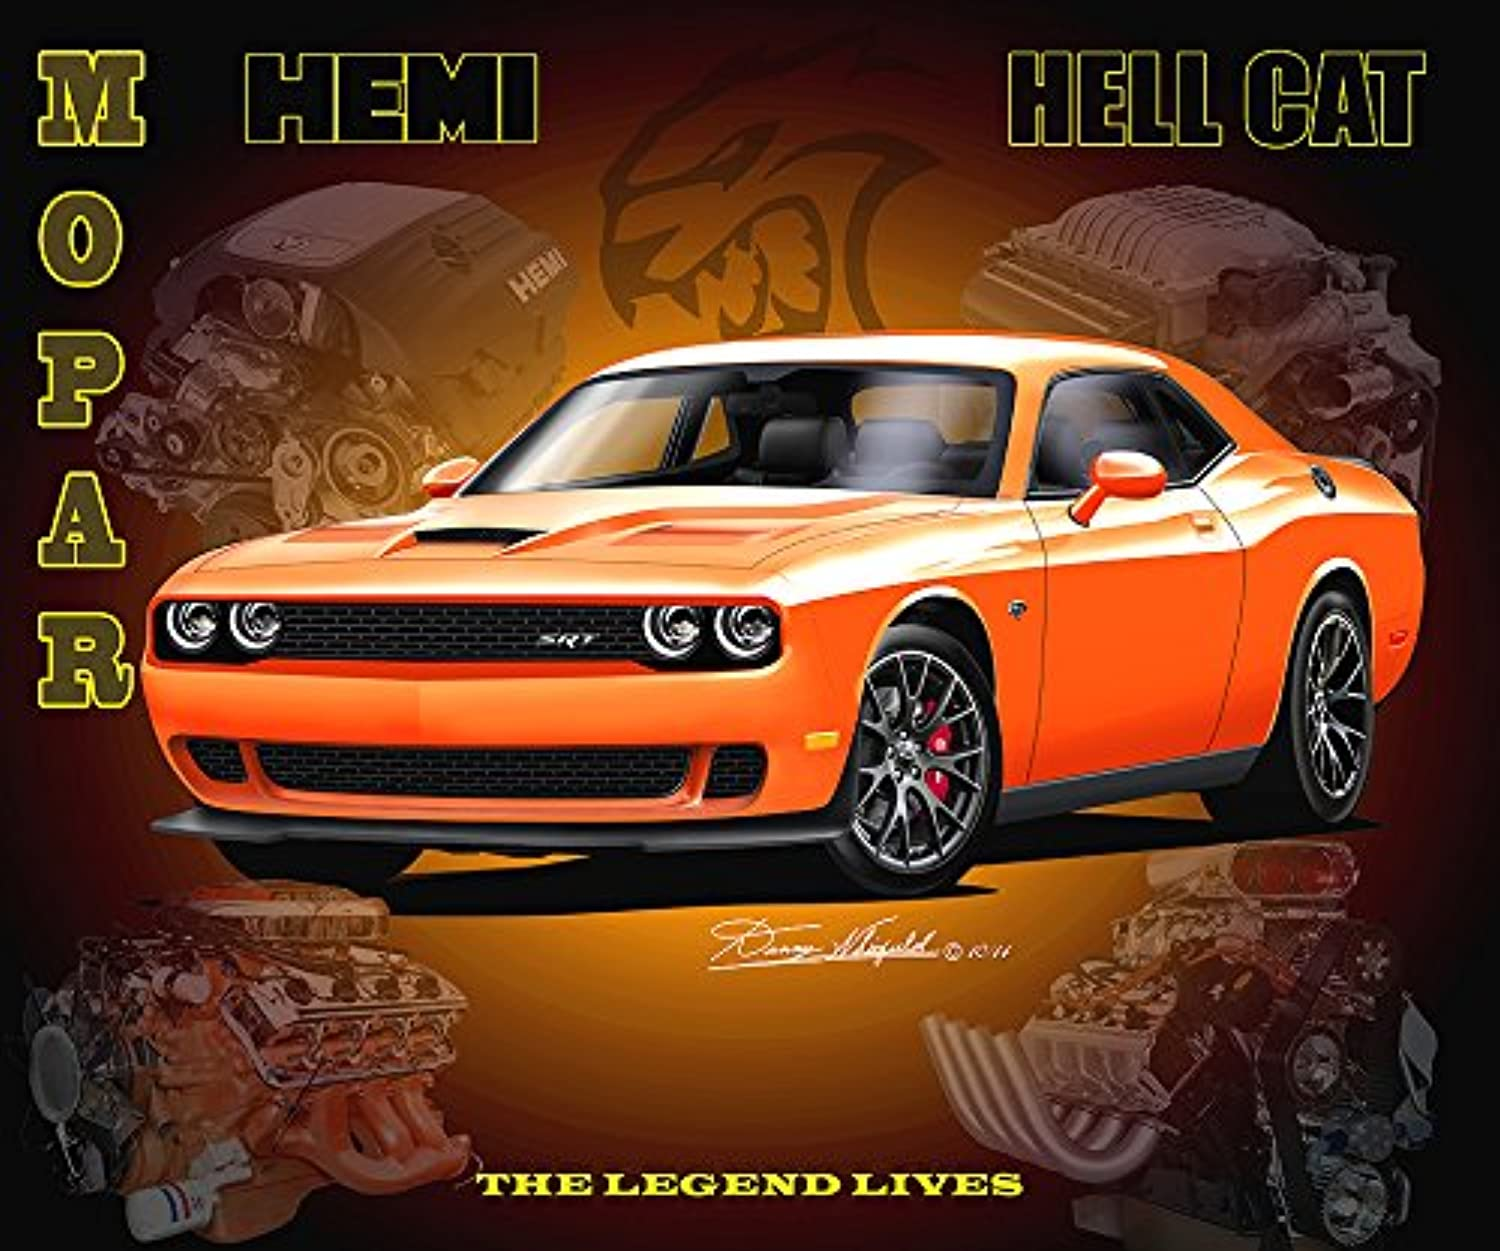 2015 Dodge Challenger Hell Cat – The Hemi Legend Lives – 公式ダニー?Whitfieldアート 16 x 20